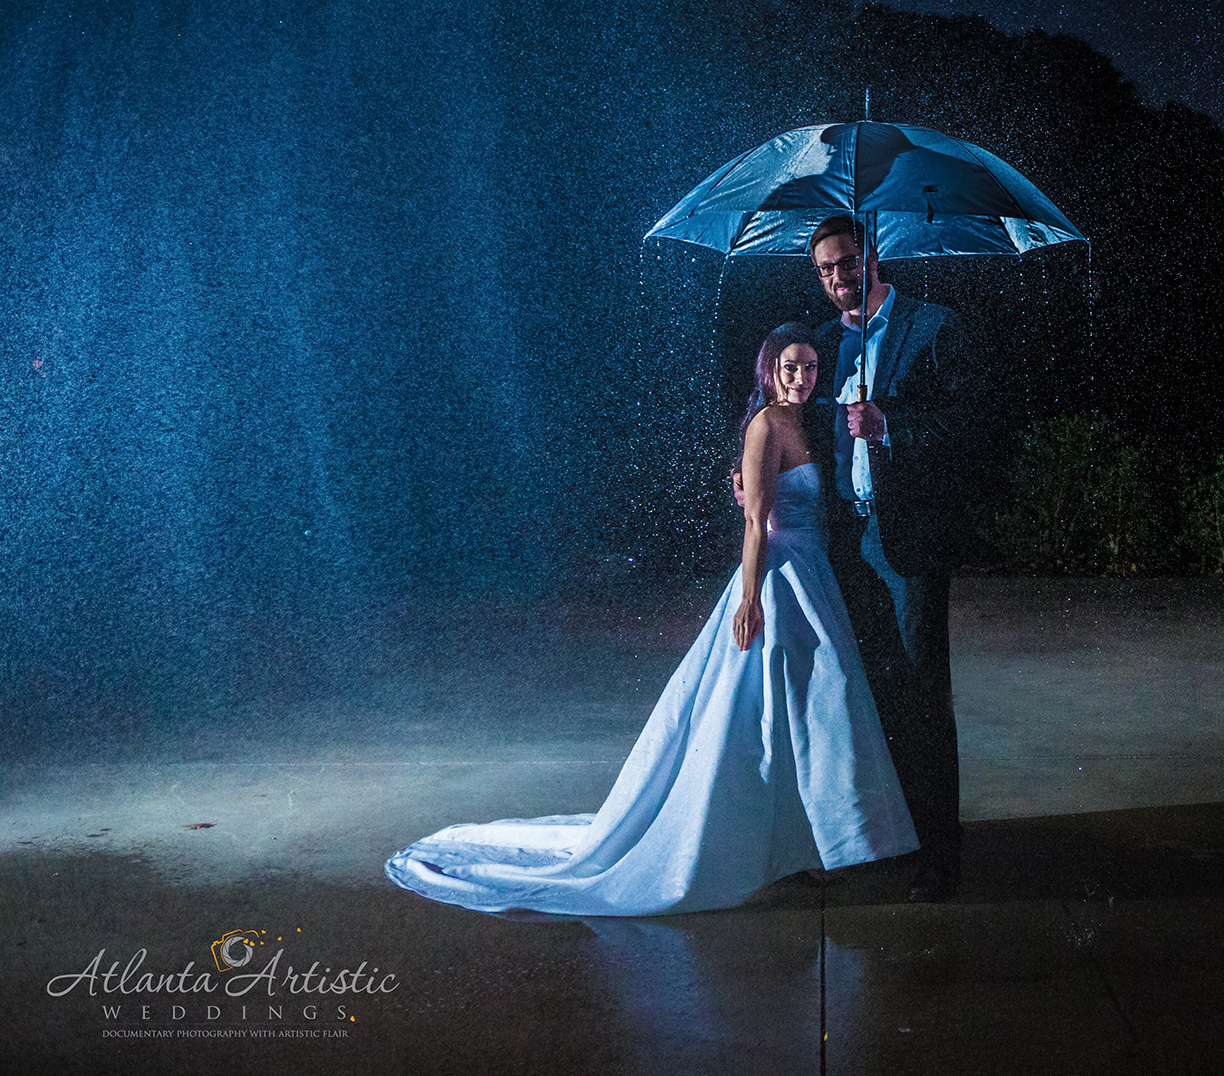 Atlanta Artistic Weddings shots dramatic wedding photography at night